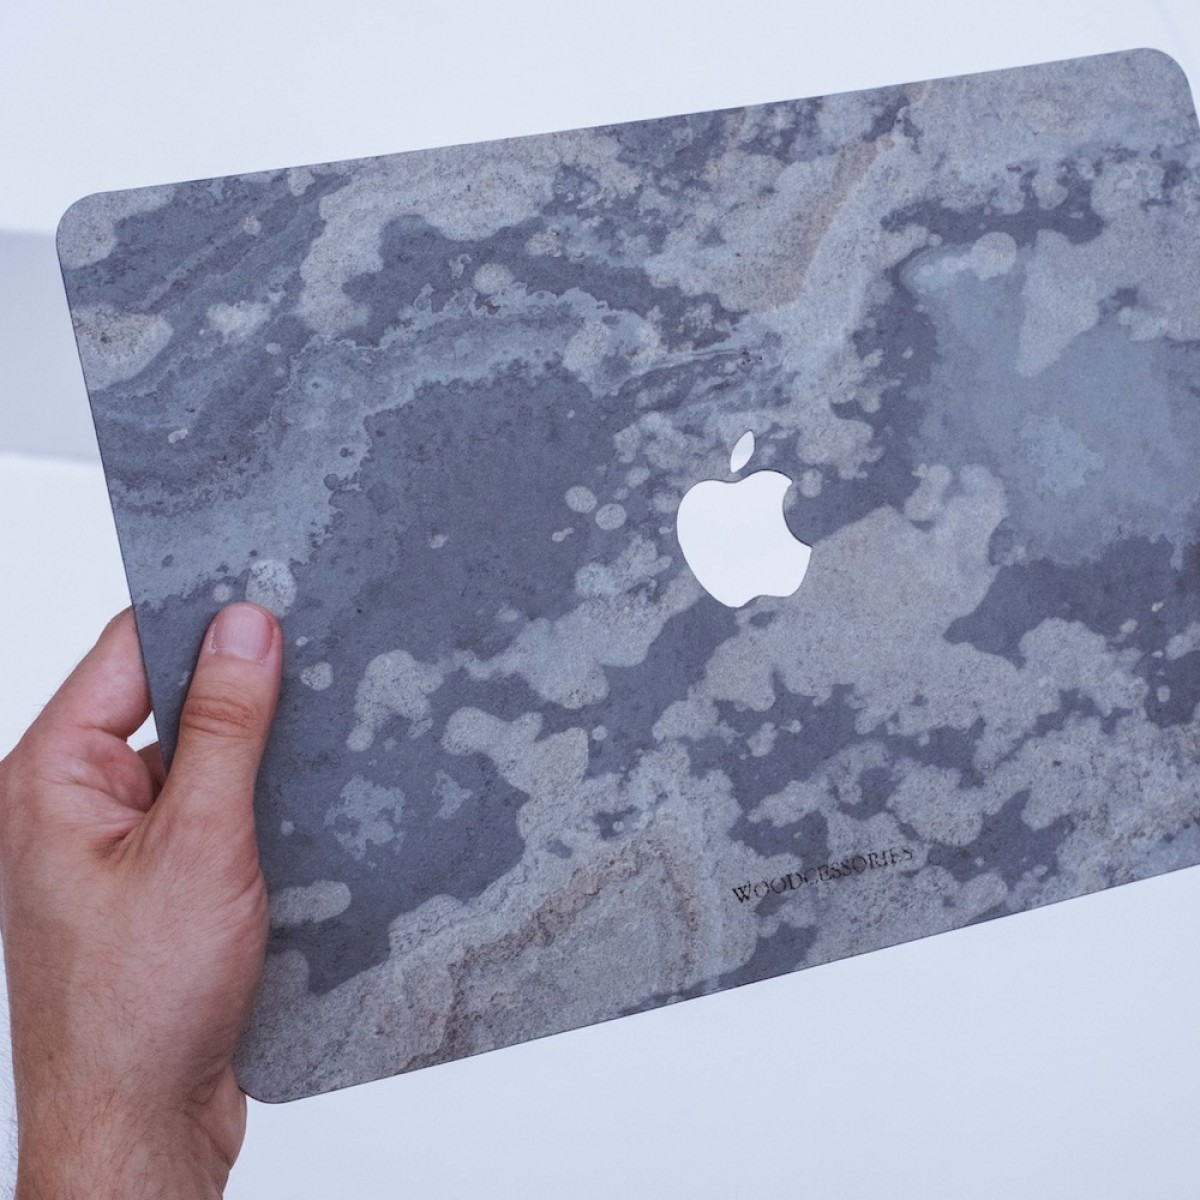 "Woodcessories - EcoSkin Stone - Design Apple Macbook Cover, Skin, Schutz für das Macbook aus hochwertigem Stein (Macbook Air (2018) / 13"" Pro / Pro Touchbar (from 2016), Volcano Schwarz, Camo Grau, Antik Weiß, Canyon Rot)"